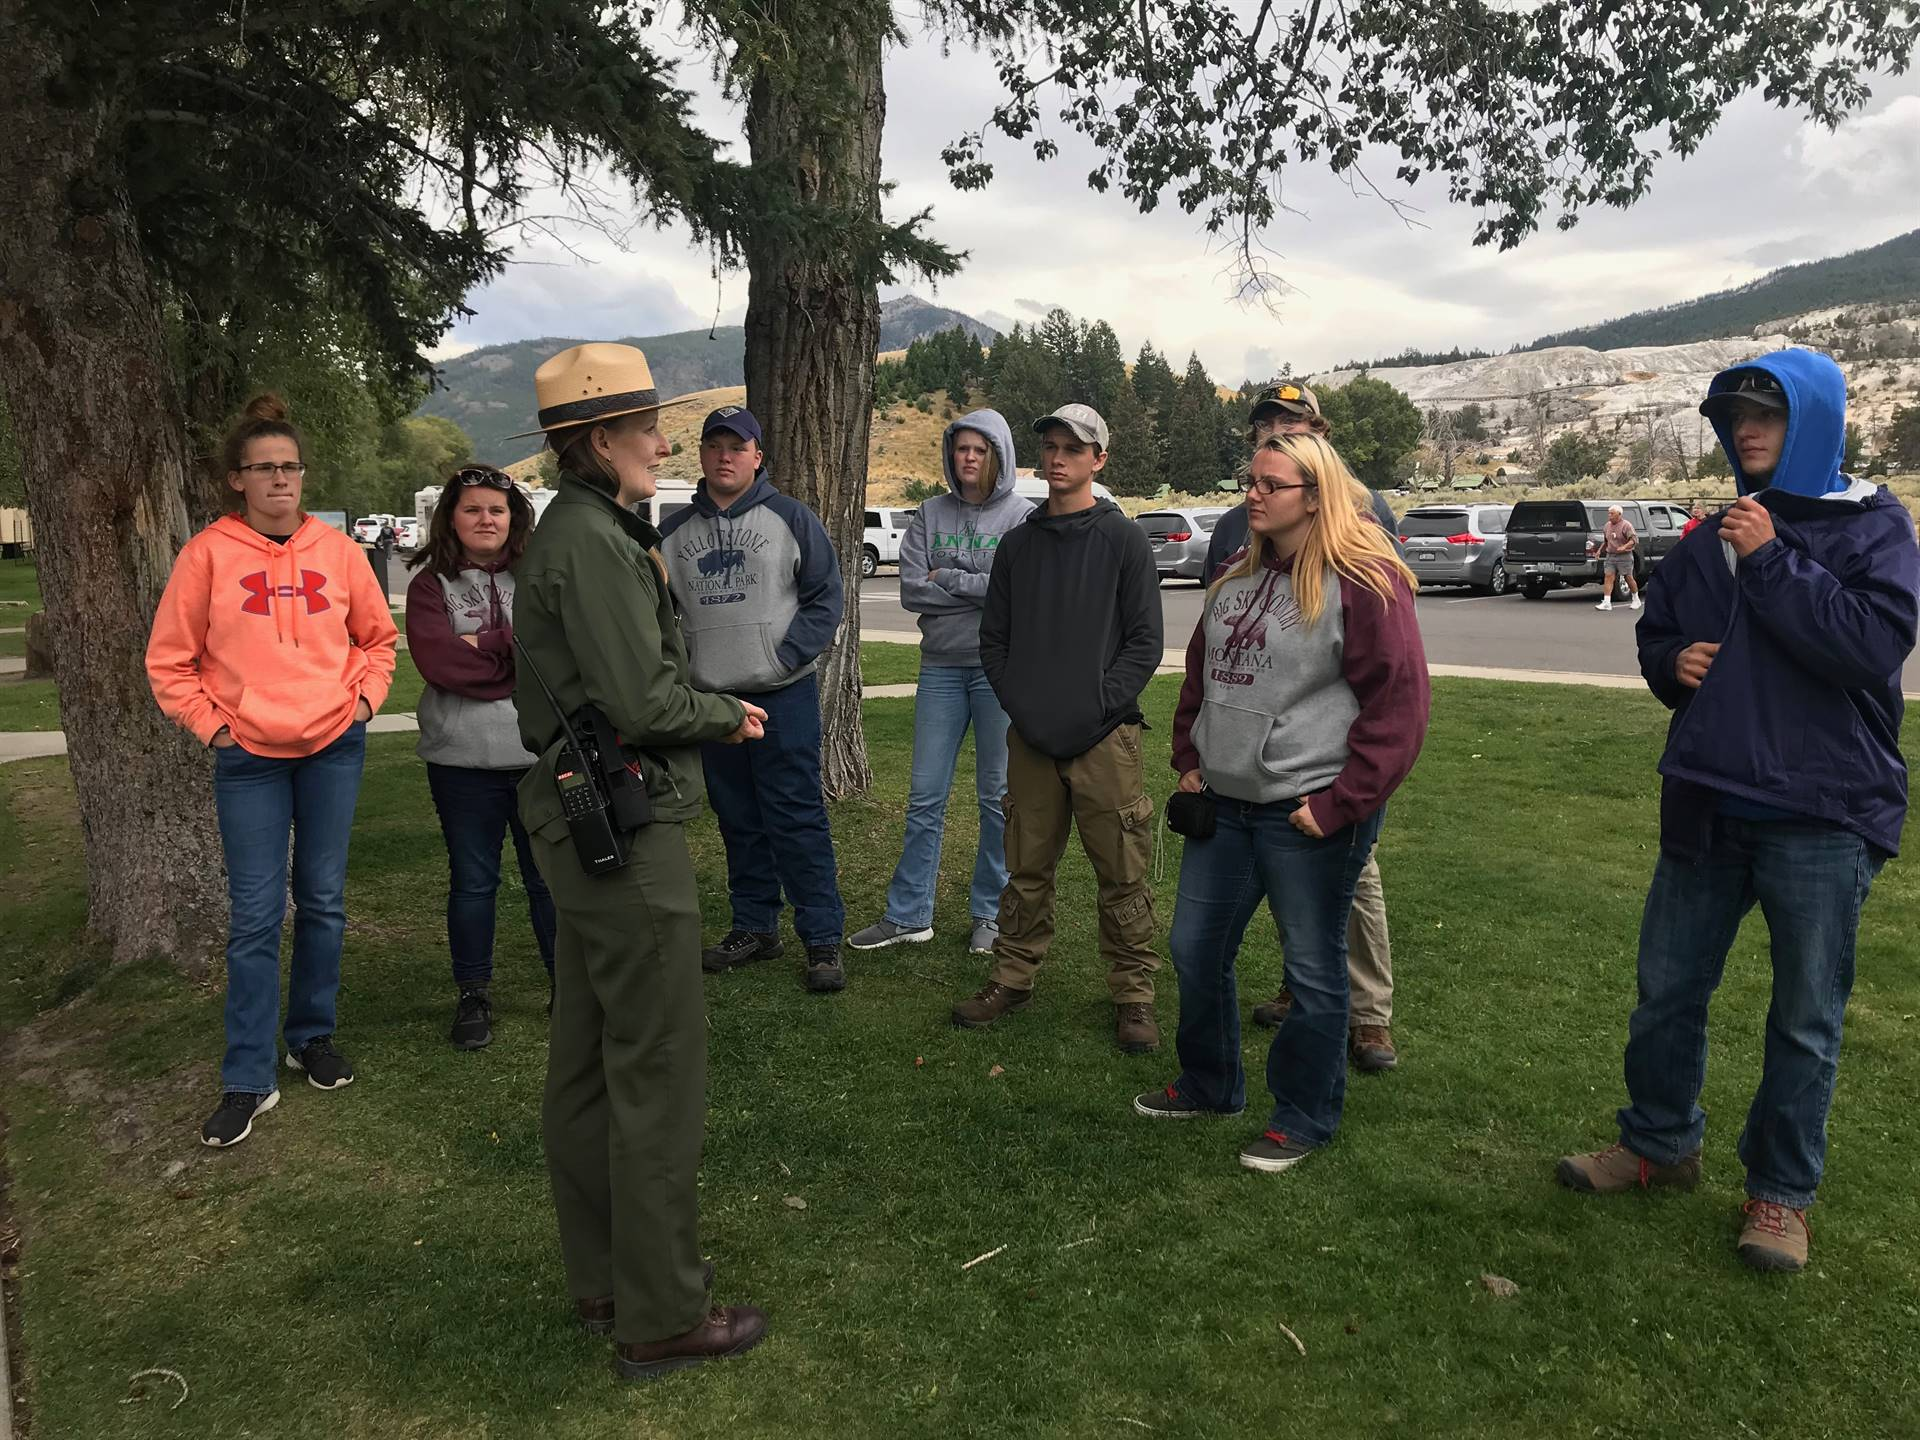 Wildlife conservationist taking to group of students